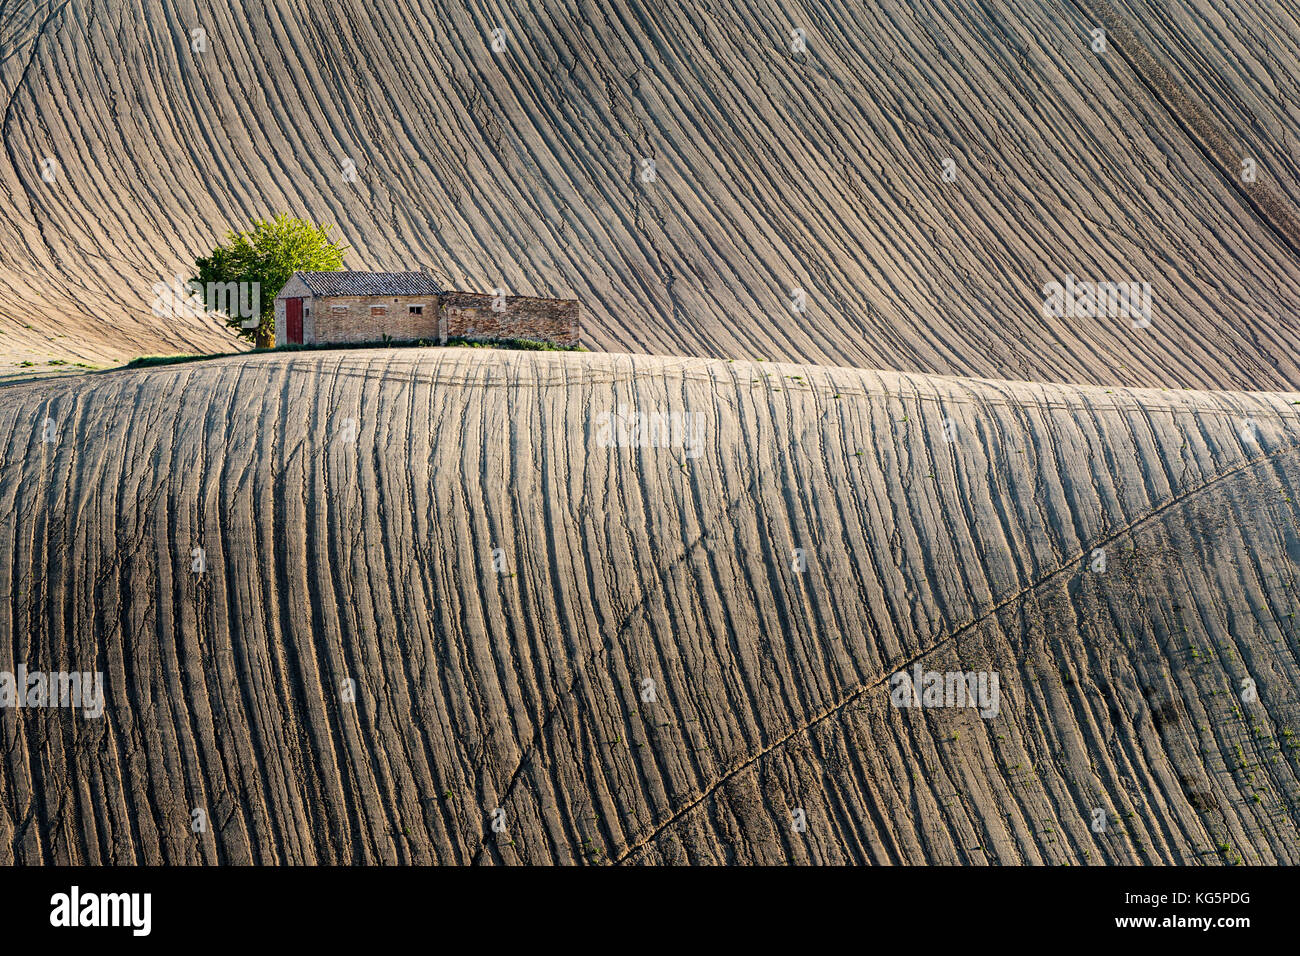 Typical rural landscape of the Marches region, italy - Stock Image